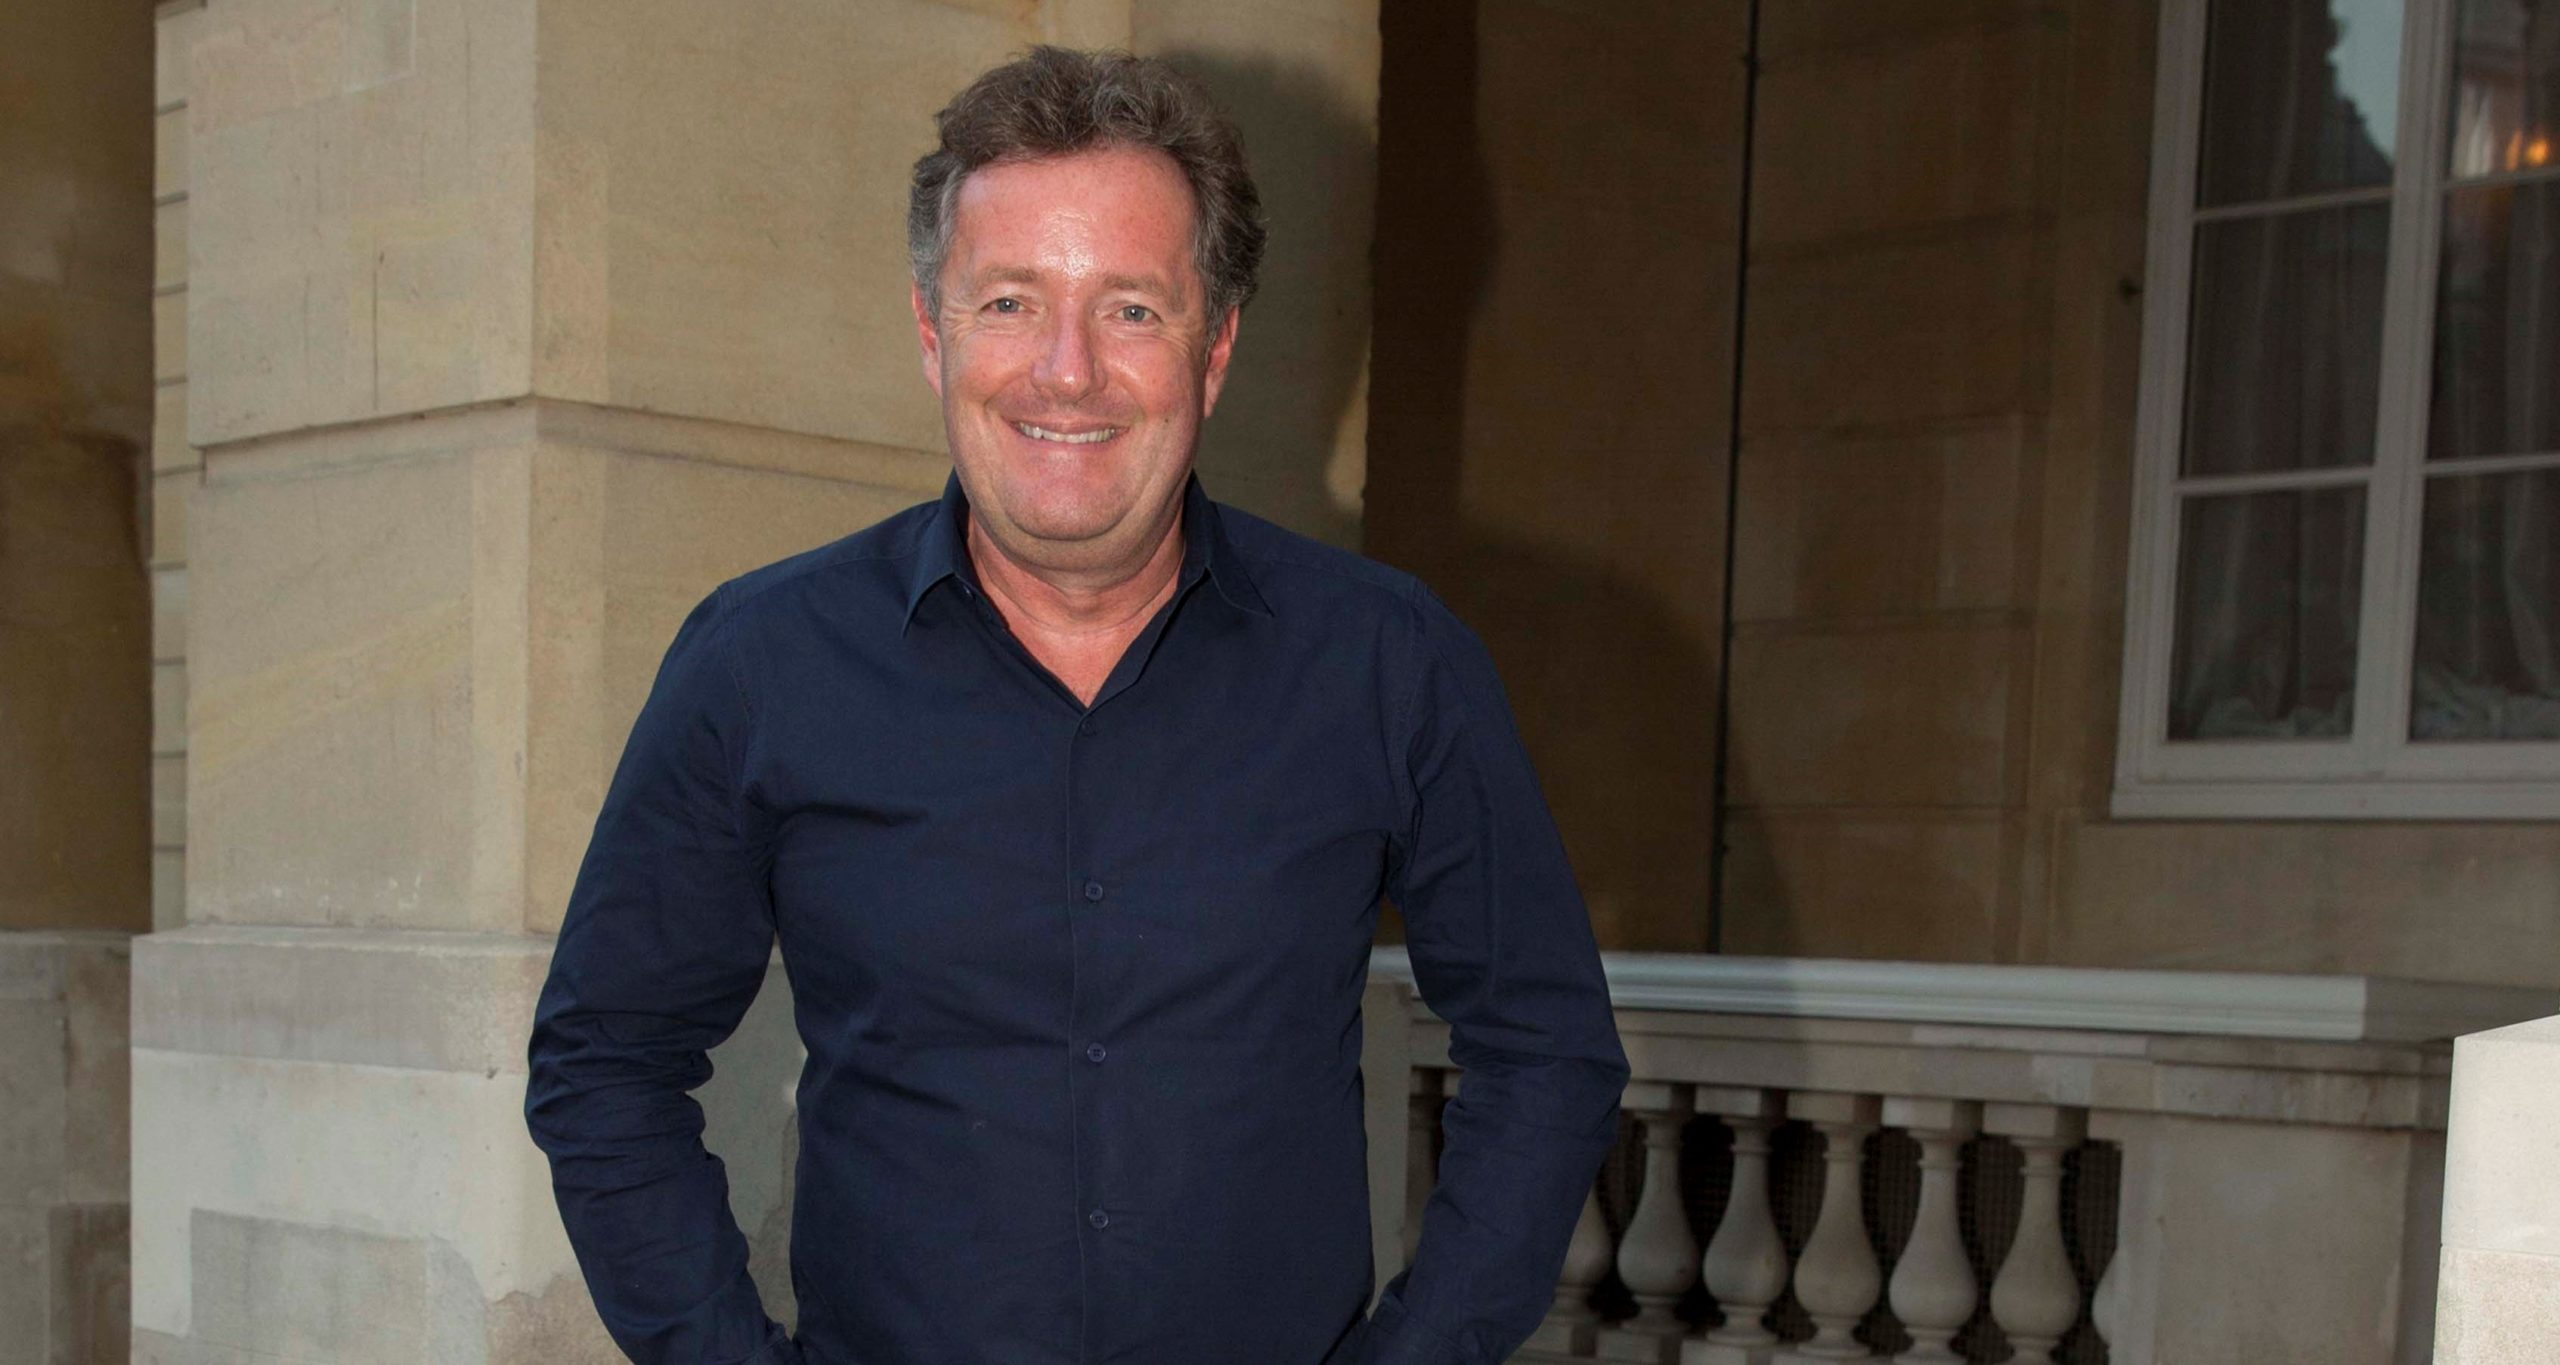 Piers Morgan calls on public to support businesses reopening